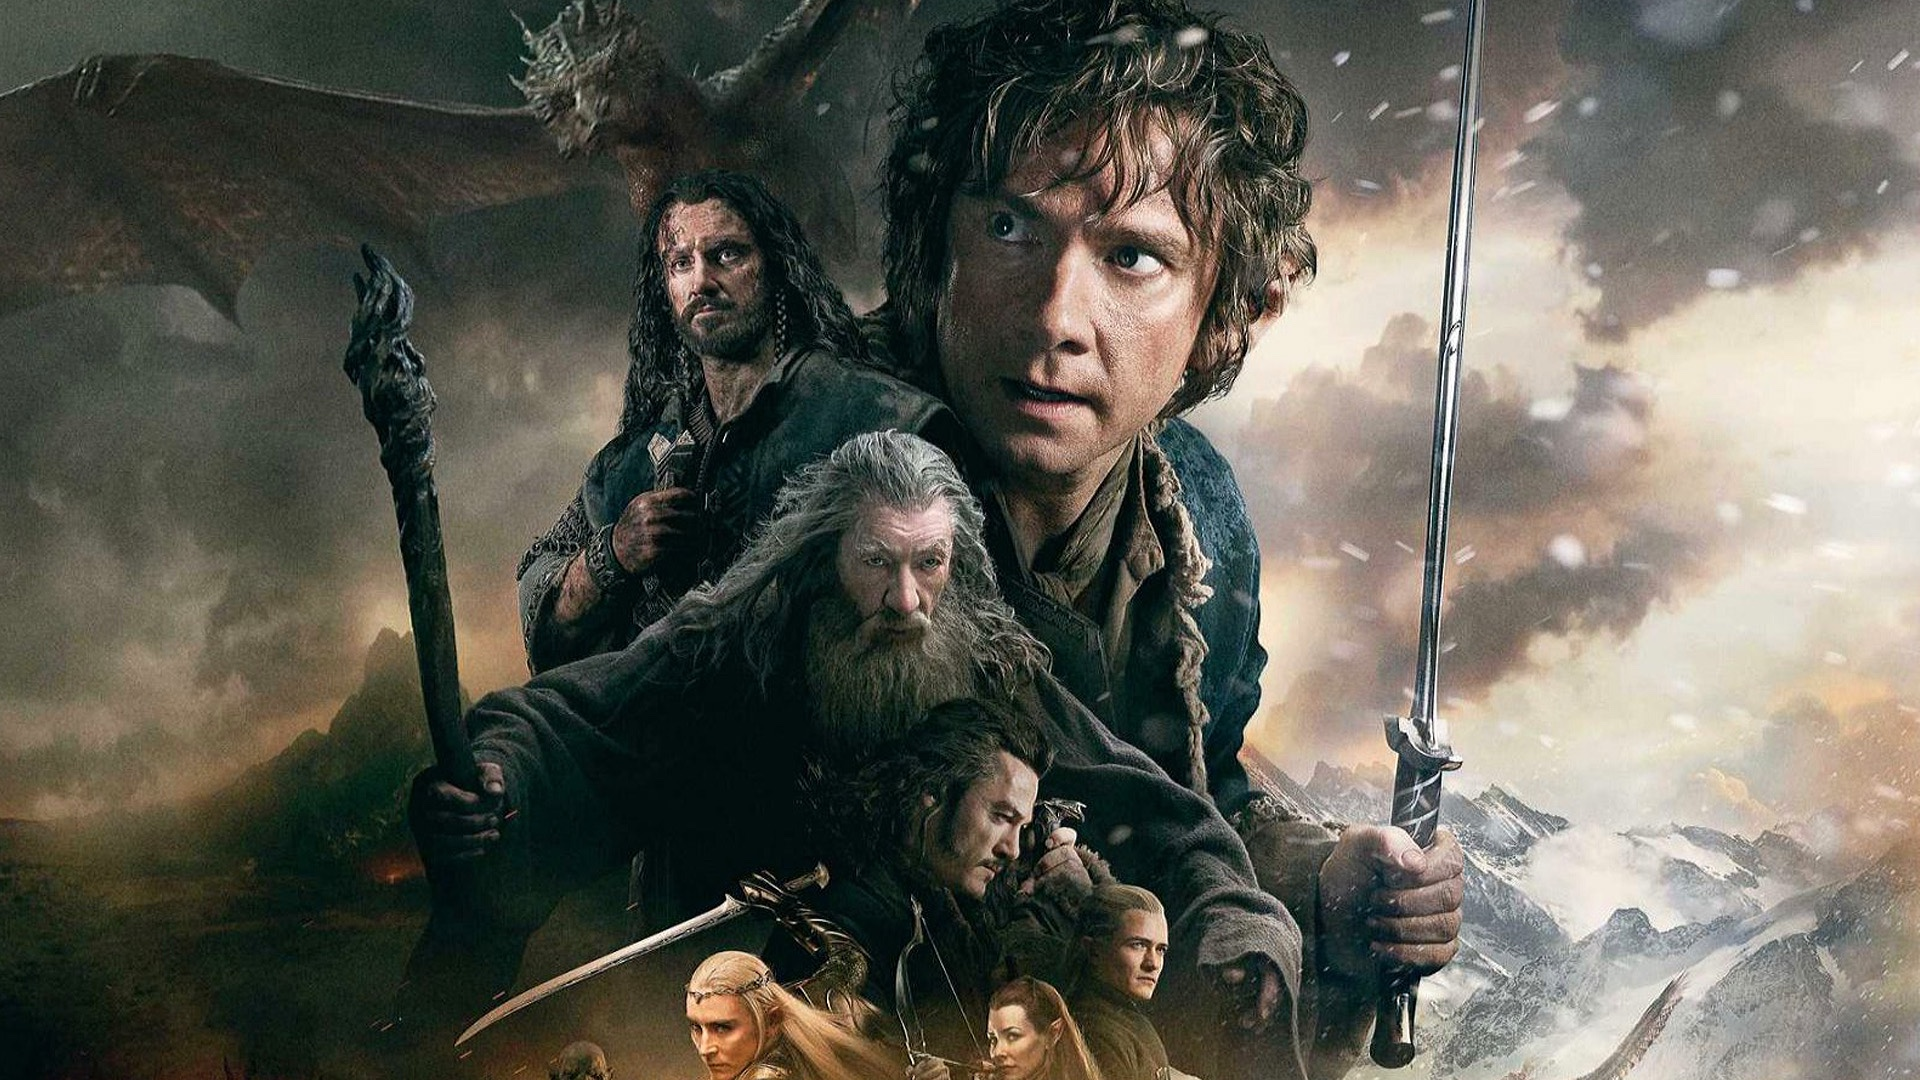 This Indepth Video Essay Reexamines The Hobbit Trilogy And  For The Record I Actually Loved Peter Jacksons The Hobbit Trilogy Ill  Admit It Wasnt Perfect And Stretching The Story Out Of The Course Of  Three Films